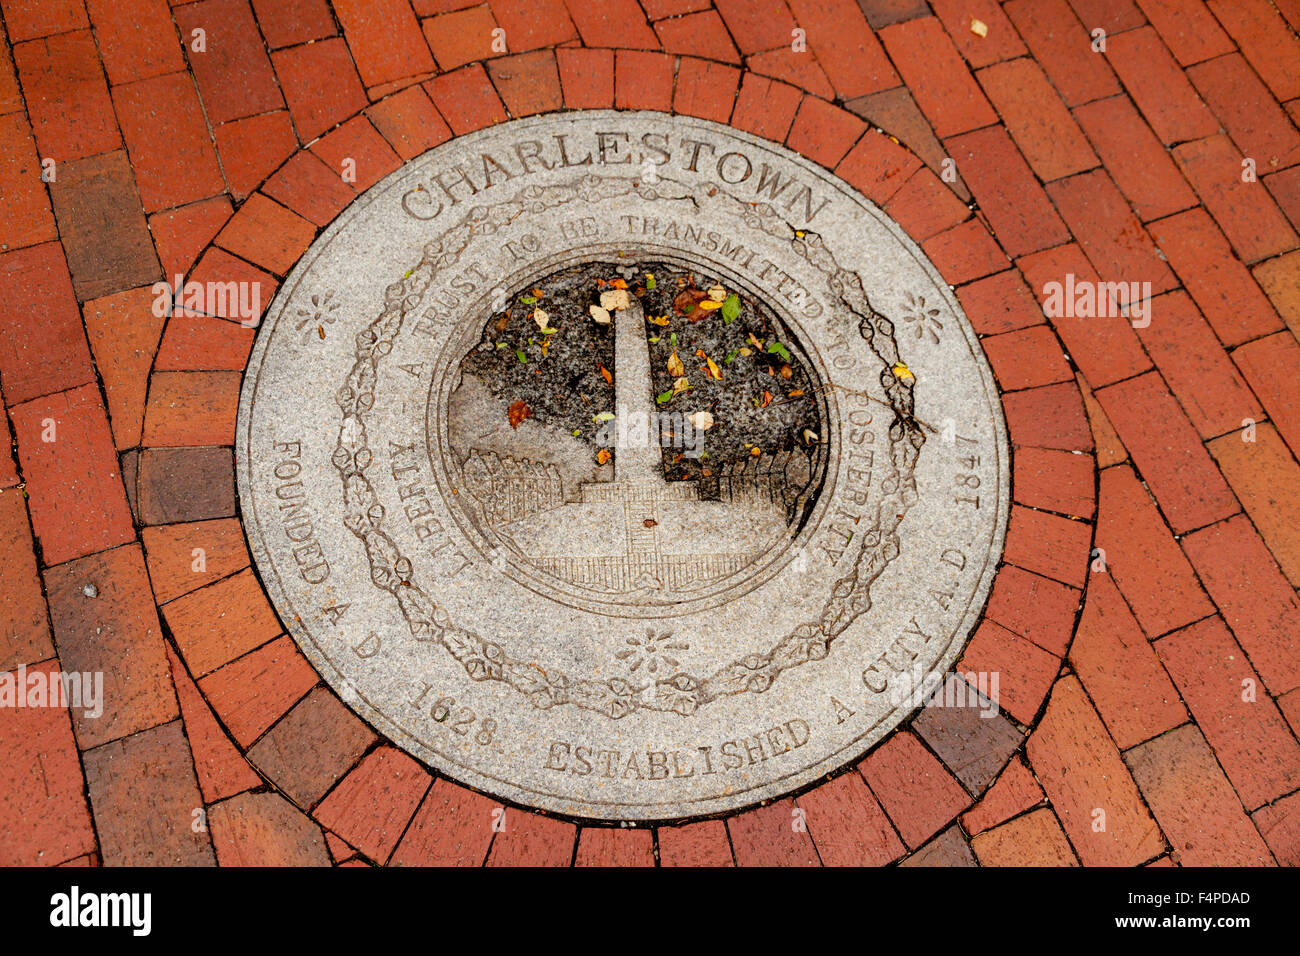 A commemorative marker in the ground in Charlestown neighborhood, Boston Massachusetts USA - Stock Image